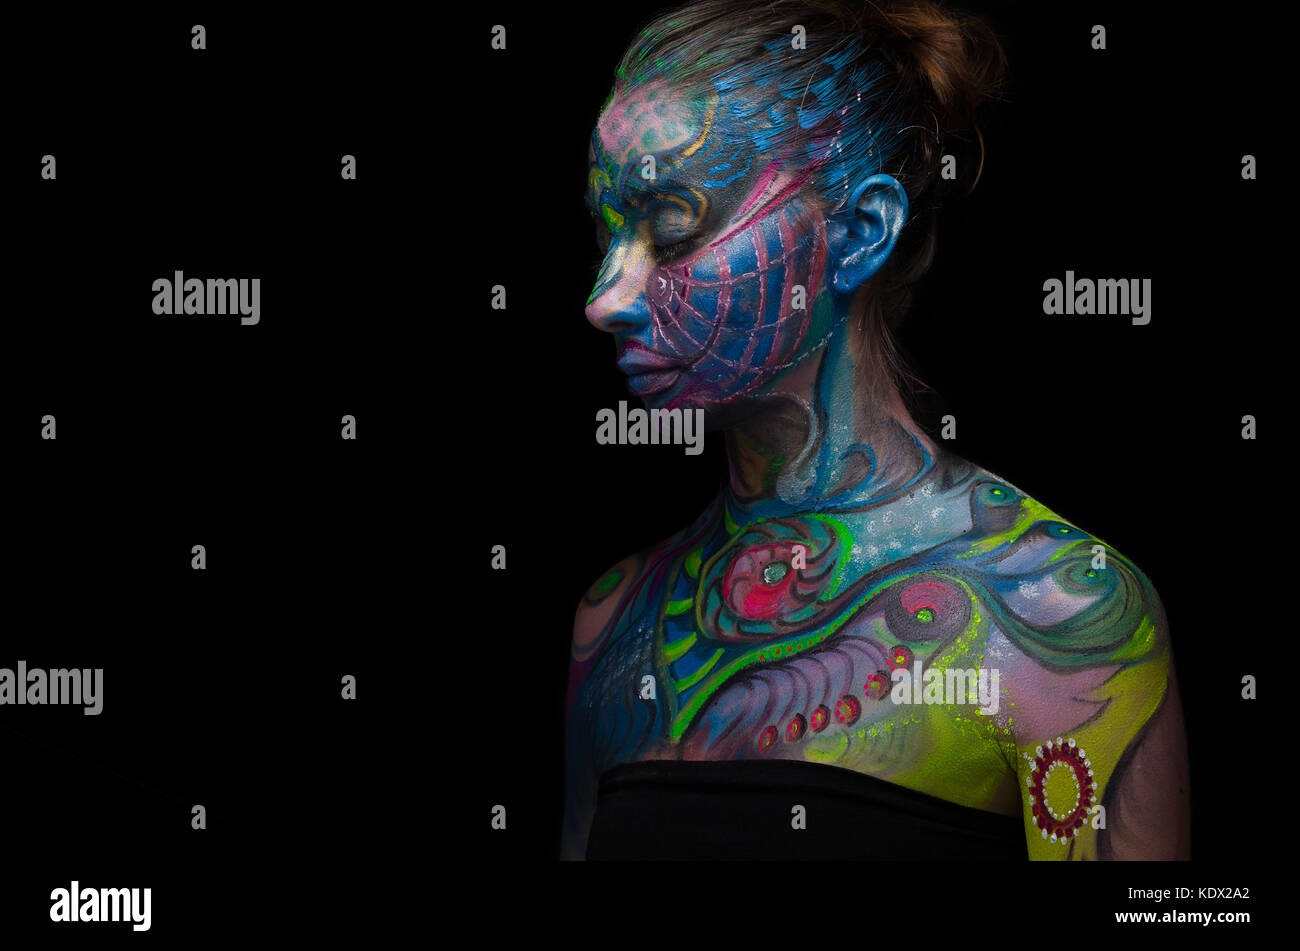 Beautiful body art - Artistic face (left side view) - Stock Image